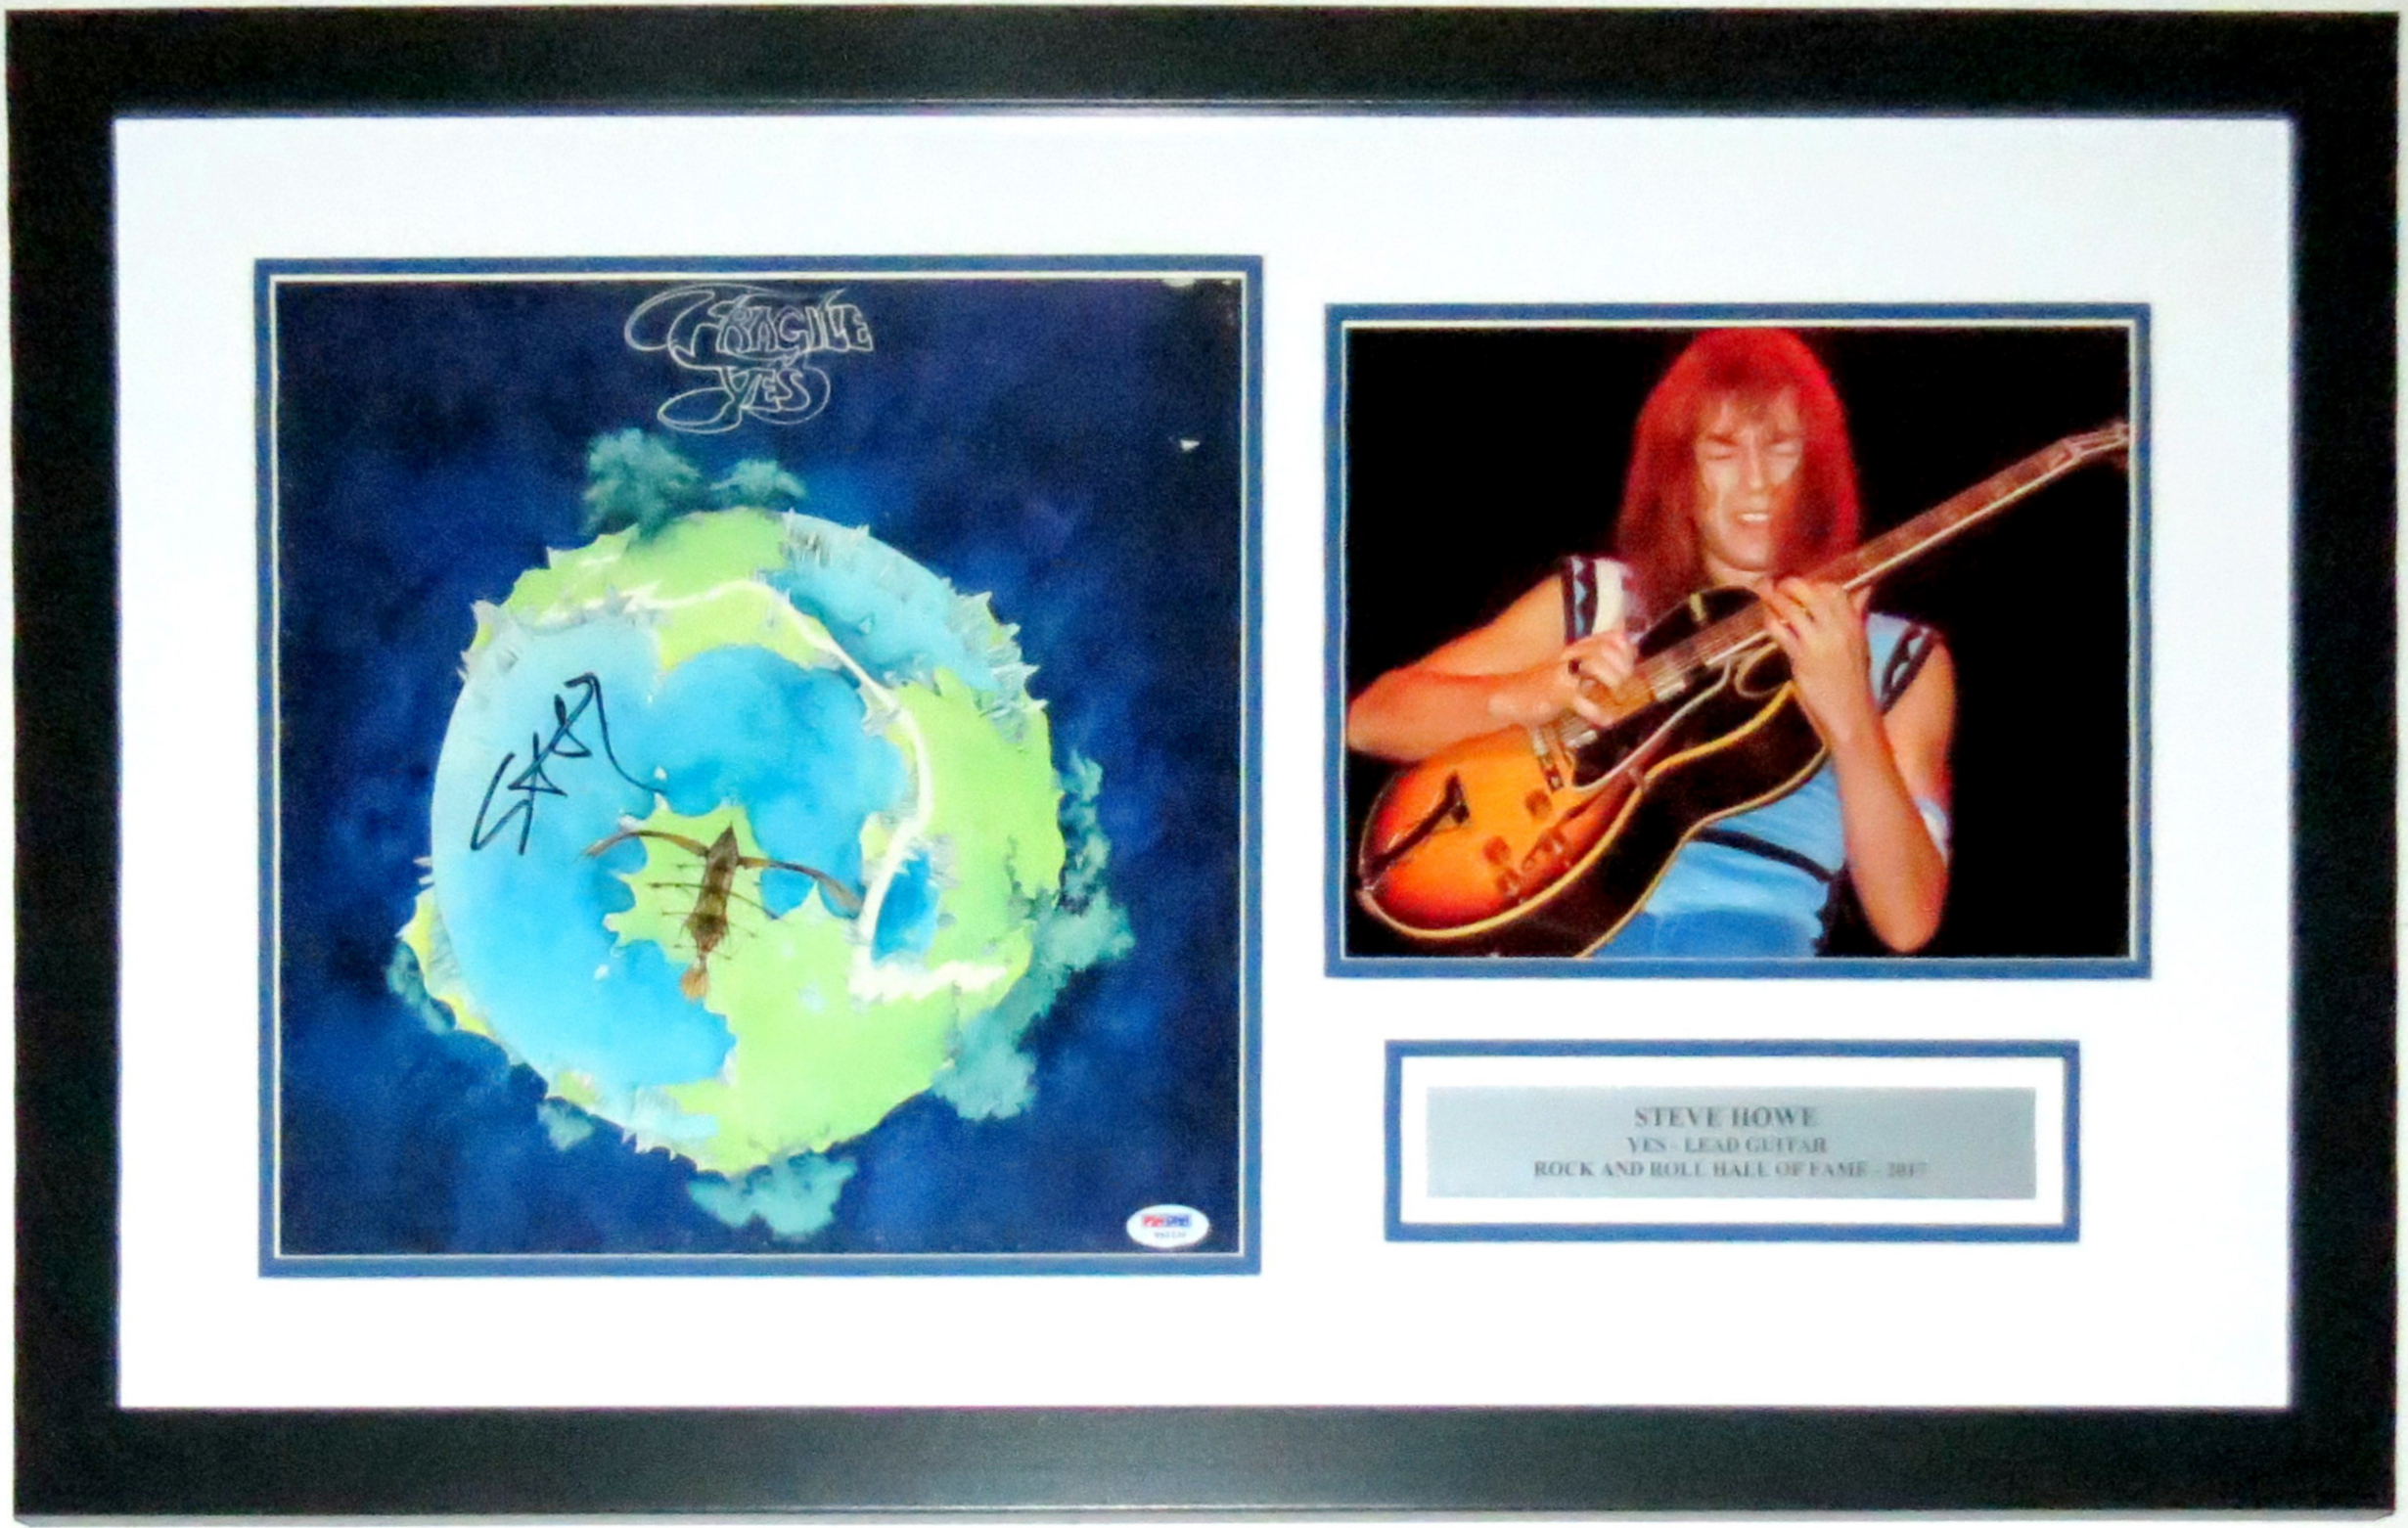 Steve Howe Signed Yes Fragile Album - PSA DNA COA Authenticated - Professionally Framed with Concert 8x10 Photo & Plate 28x18